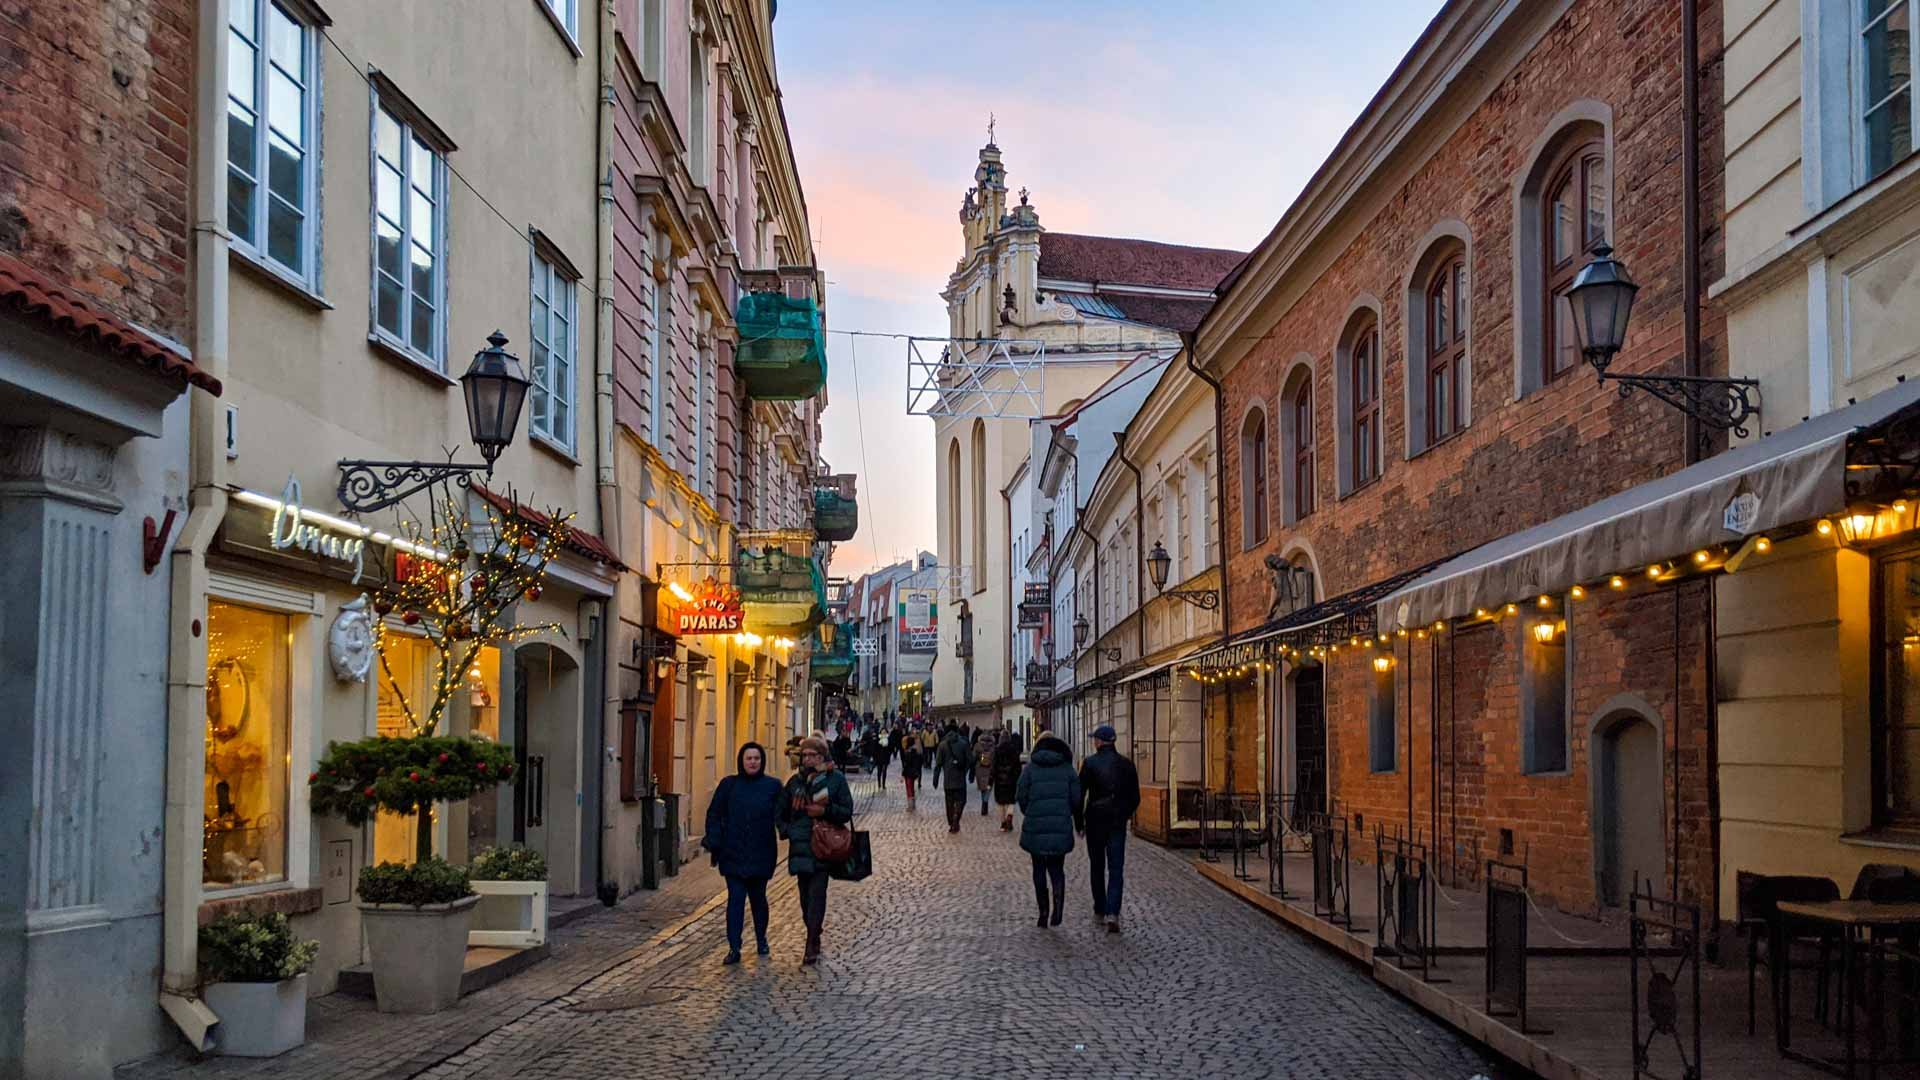 Old Town in Vilnius, Lithuania